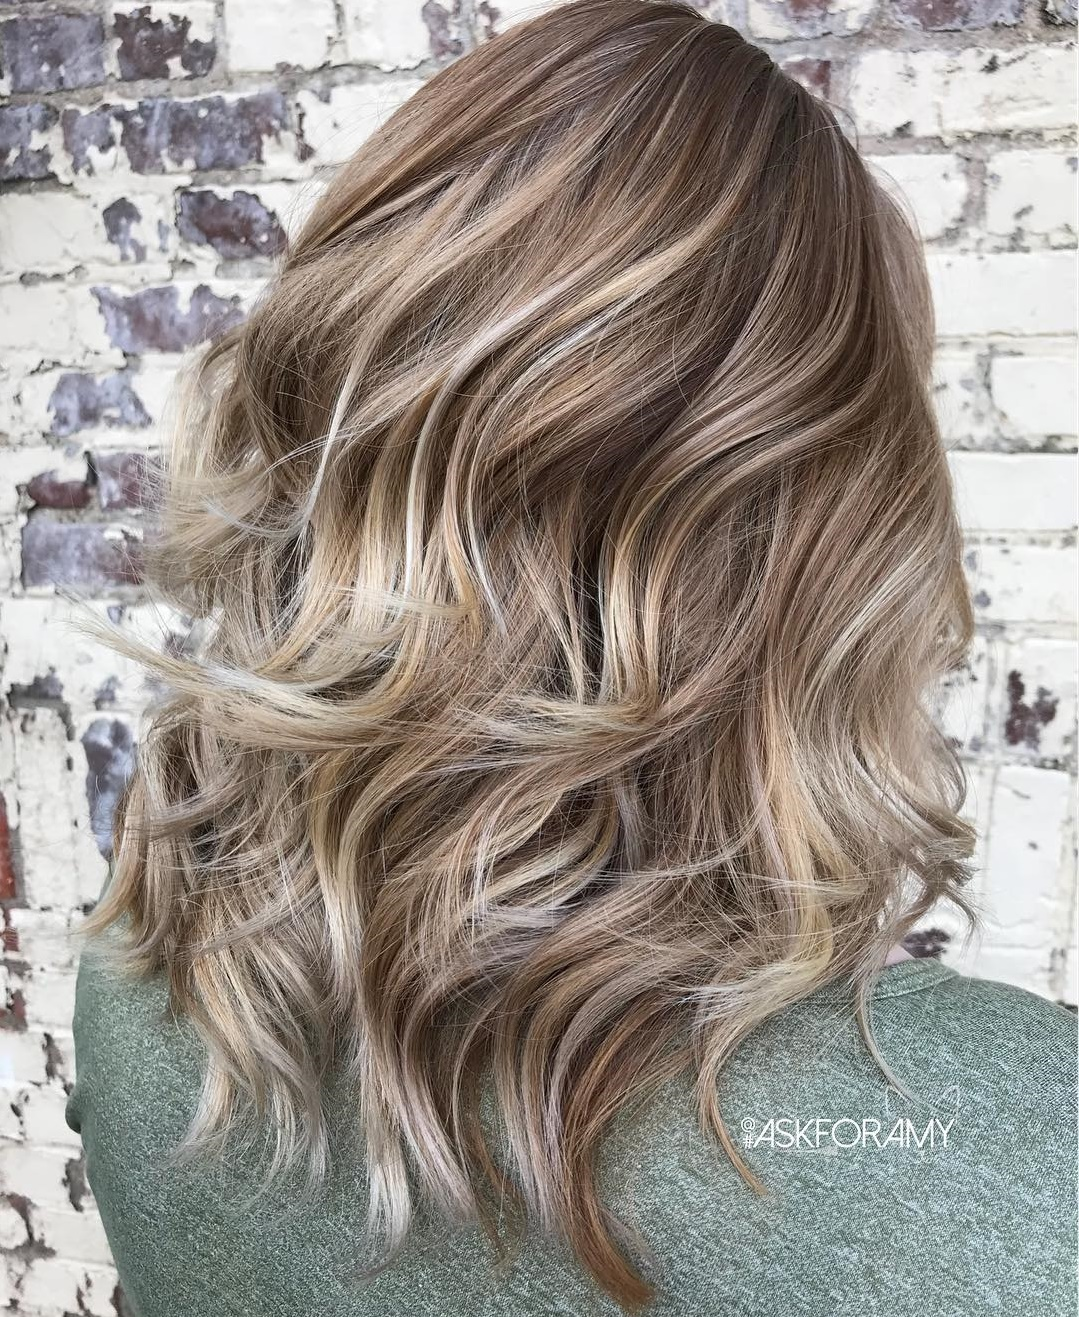 50 Best Medium Length Layered Haircuts In 2020 Hair Adviser